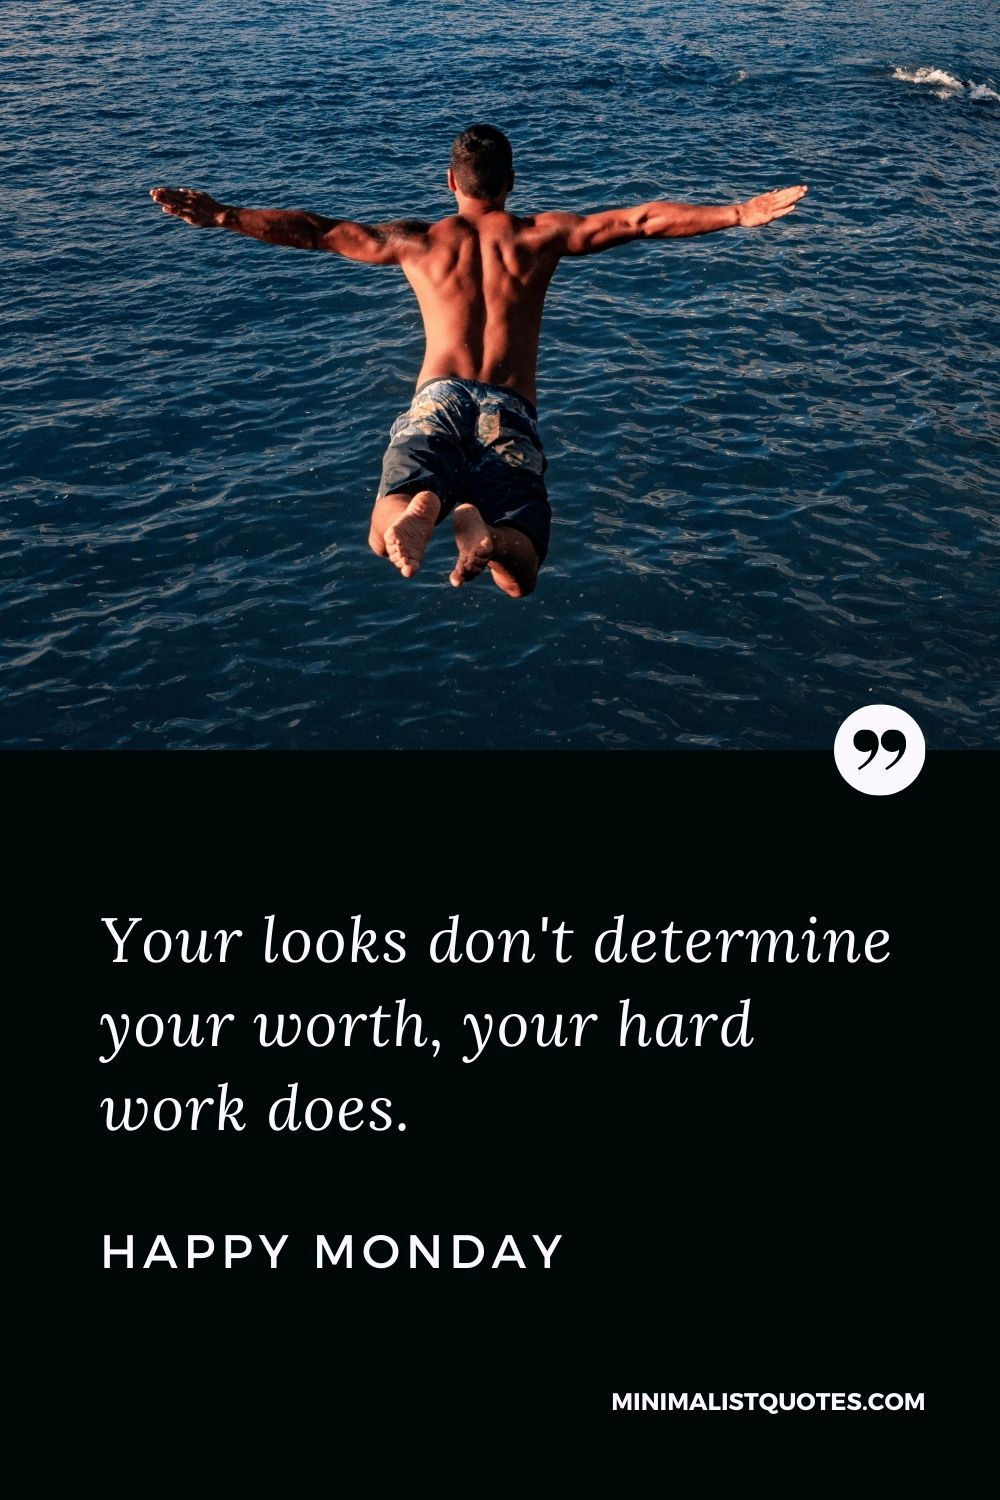 Monday Motivation Quote & Message: Your looks don't determine your worth, your hard work does. Happy Monday!